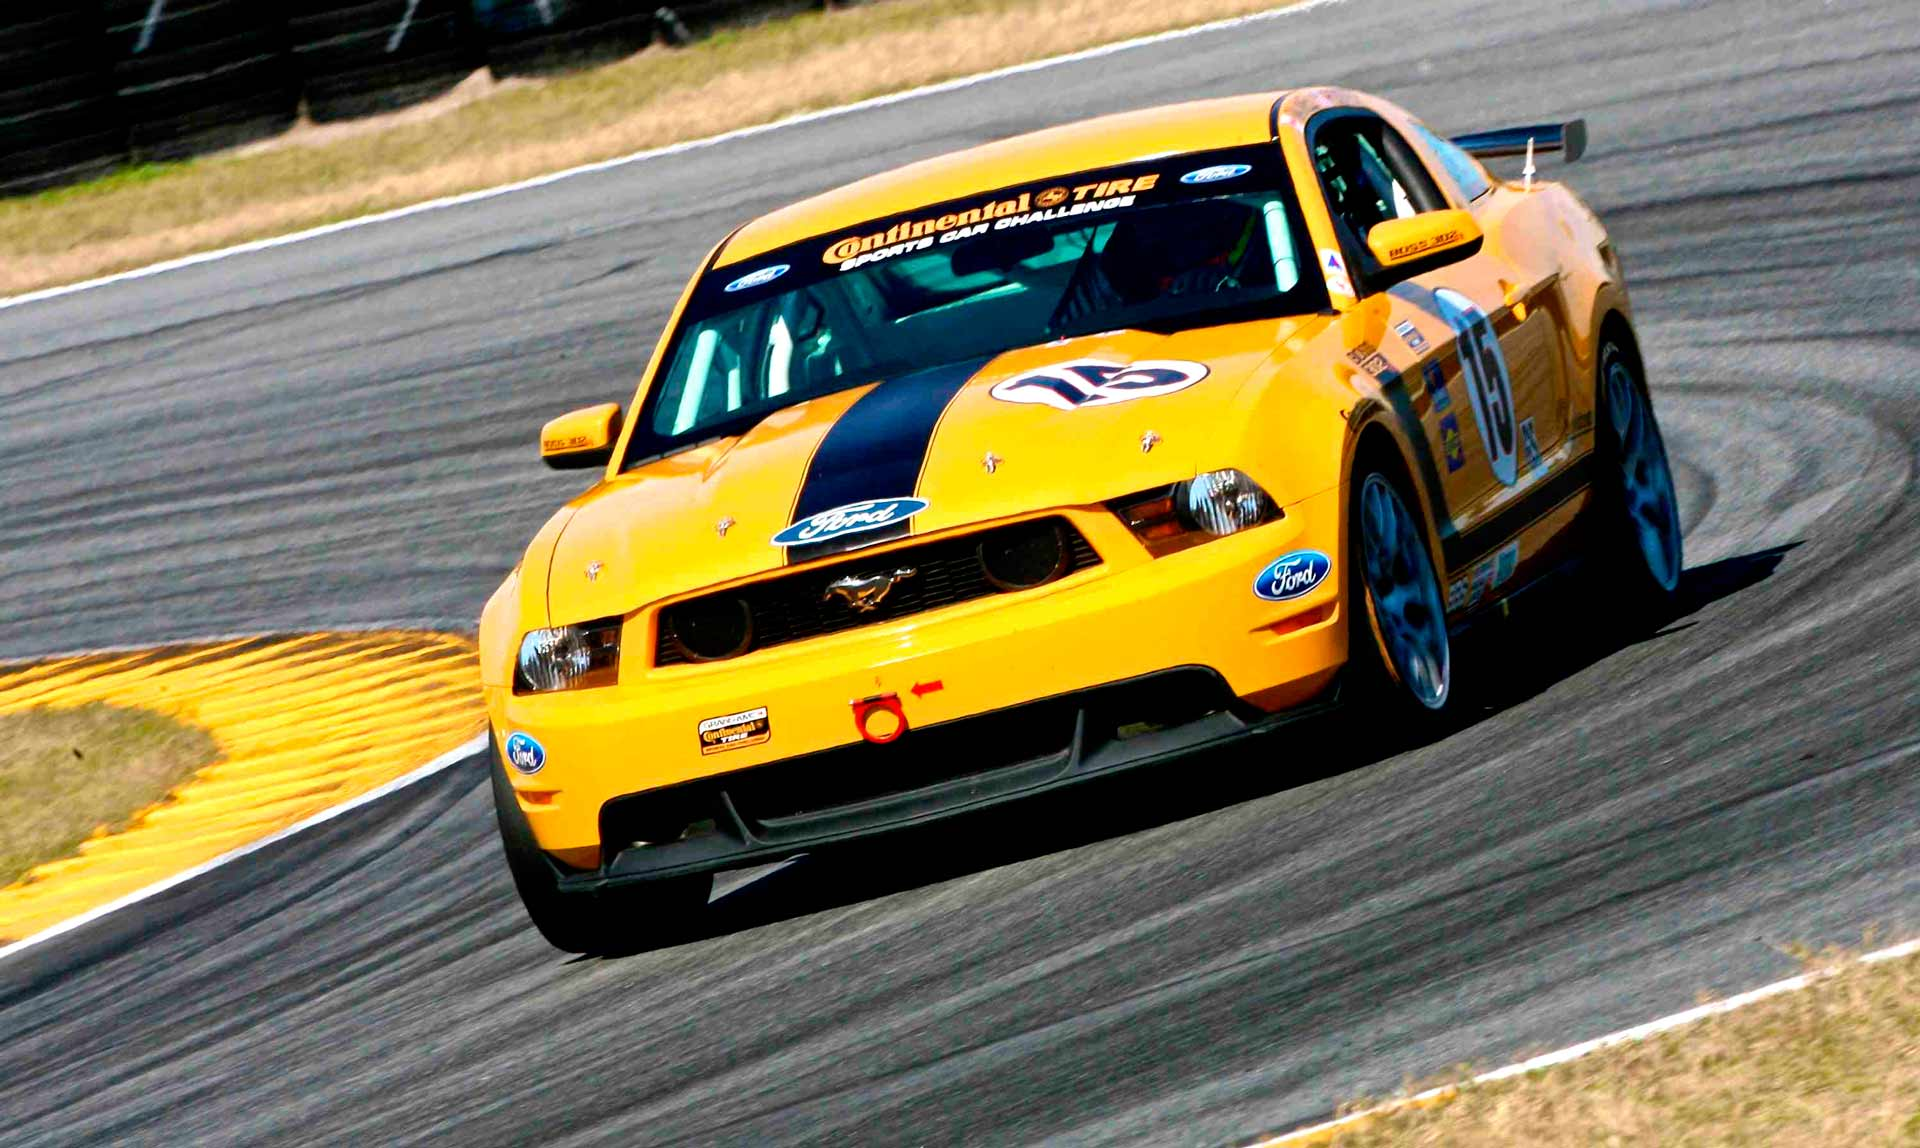 In April of 2012, the Boss 302R Mustang from Multimatic helps Ford return to the podium in sportscar racing once again.